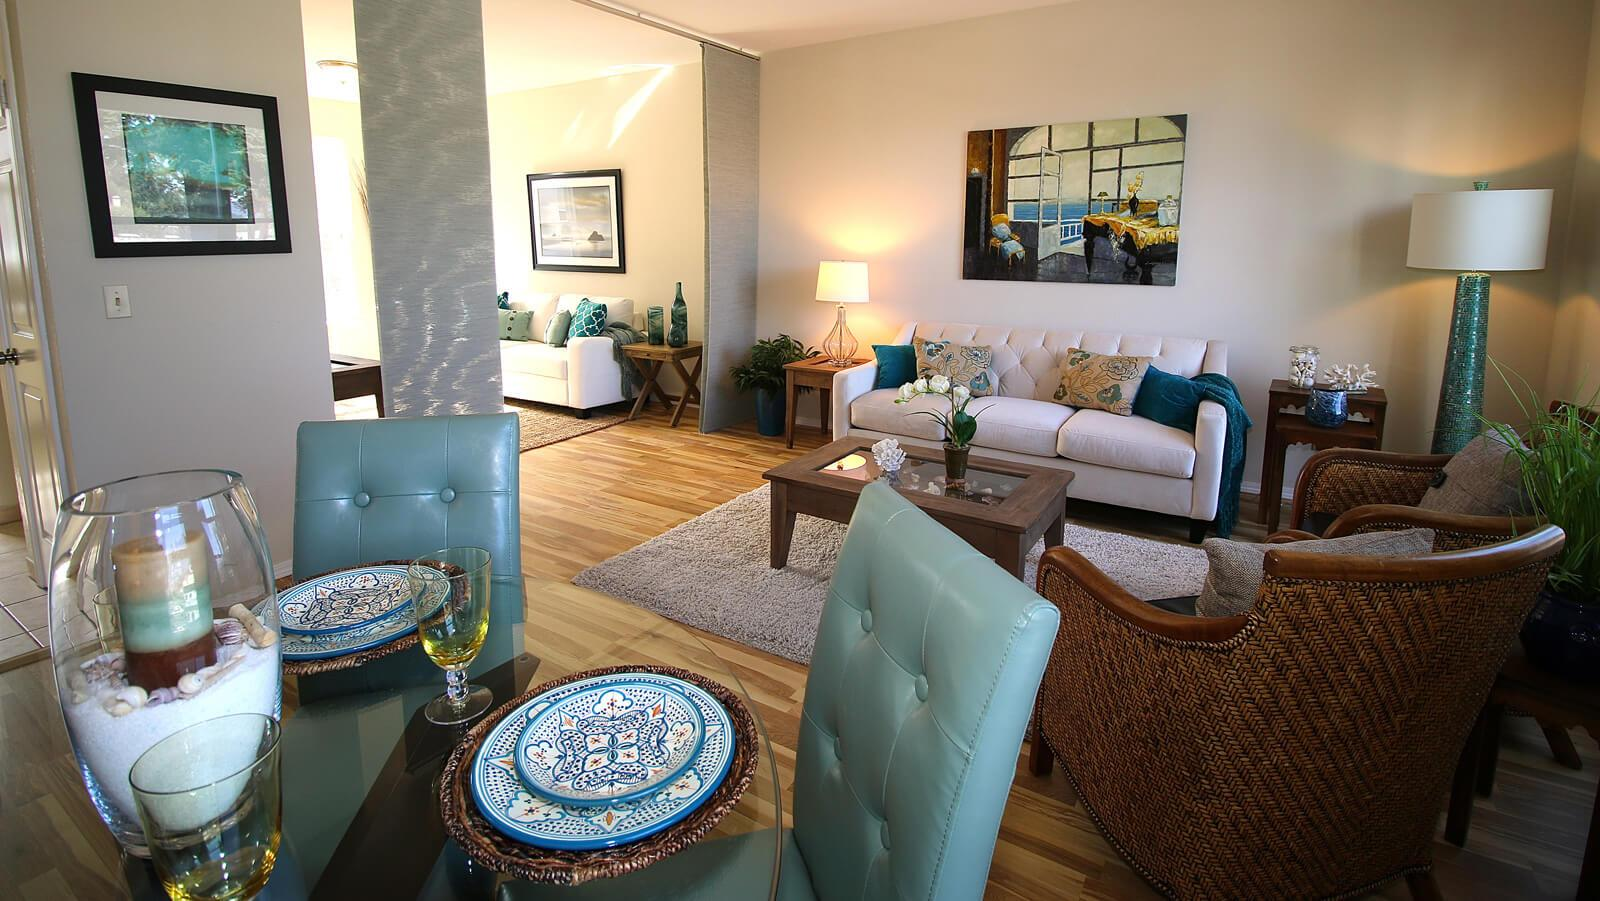 A condo in Santa Cruz, CA, Staged by Limelight Home Staging